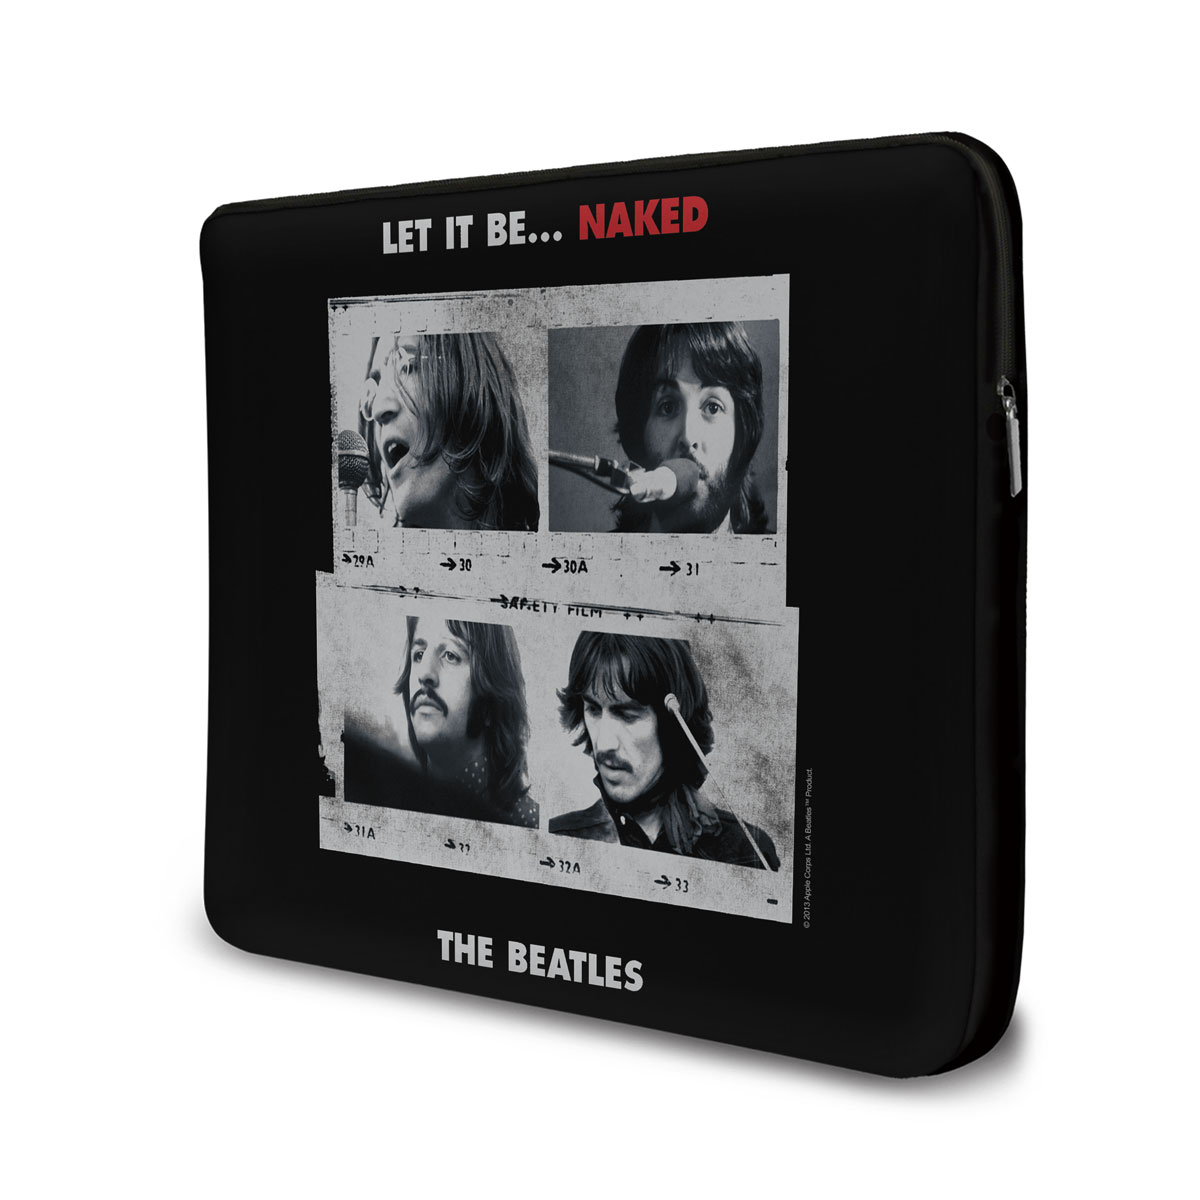 Capa Para Notebook The Beatles Let It Be... Naked